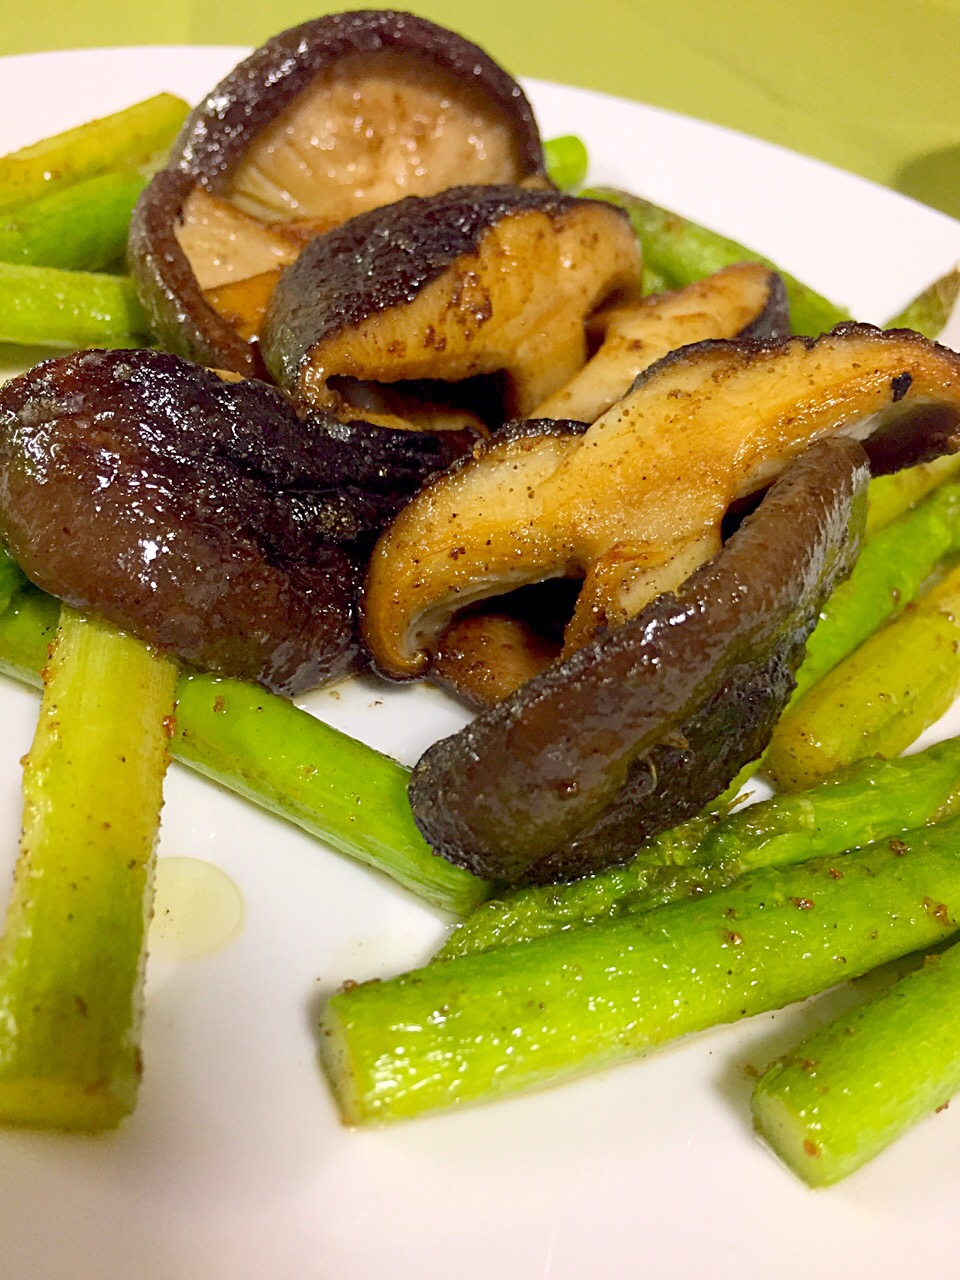 Buttered asparagus and mushrooms